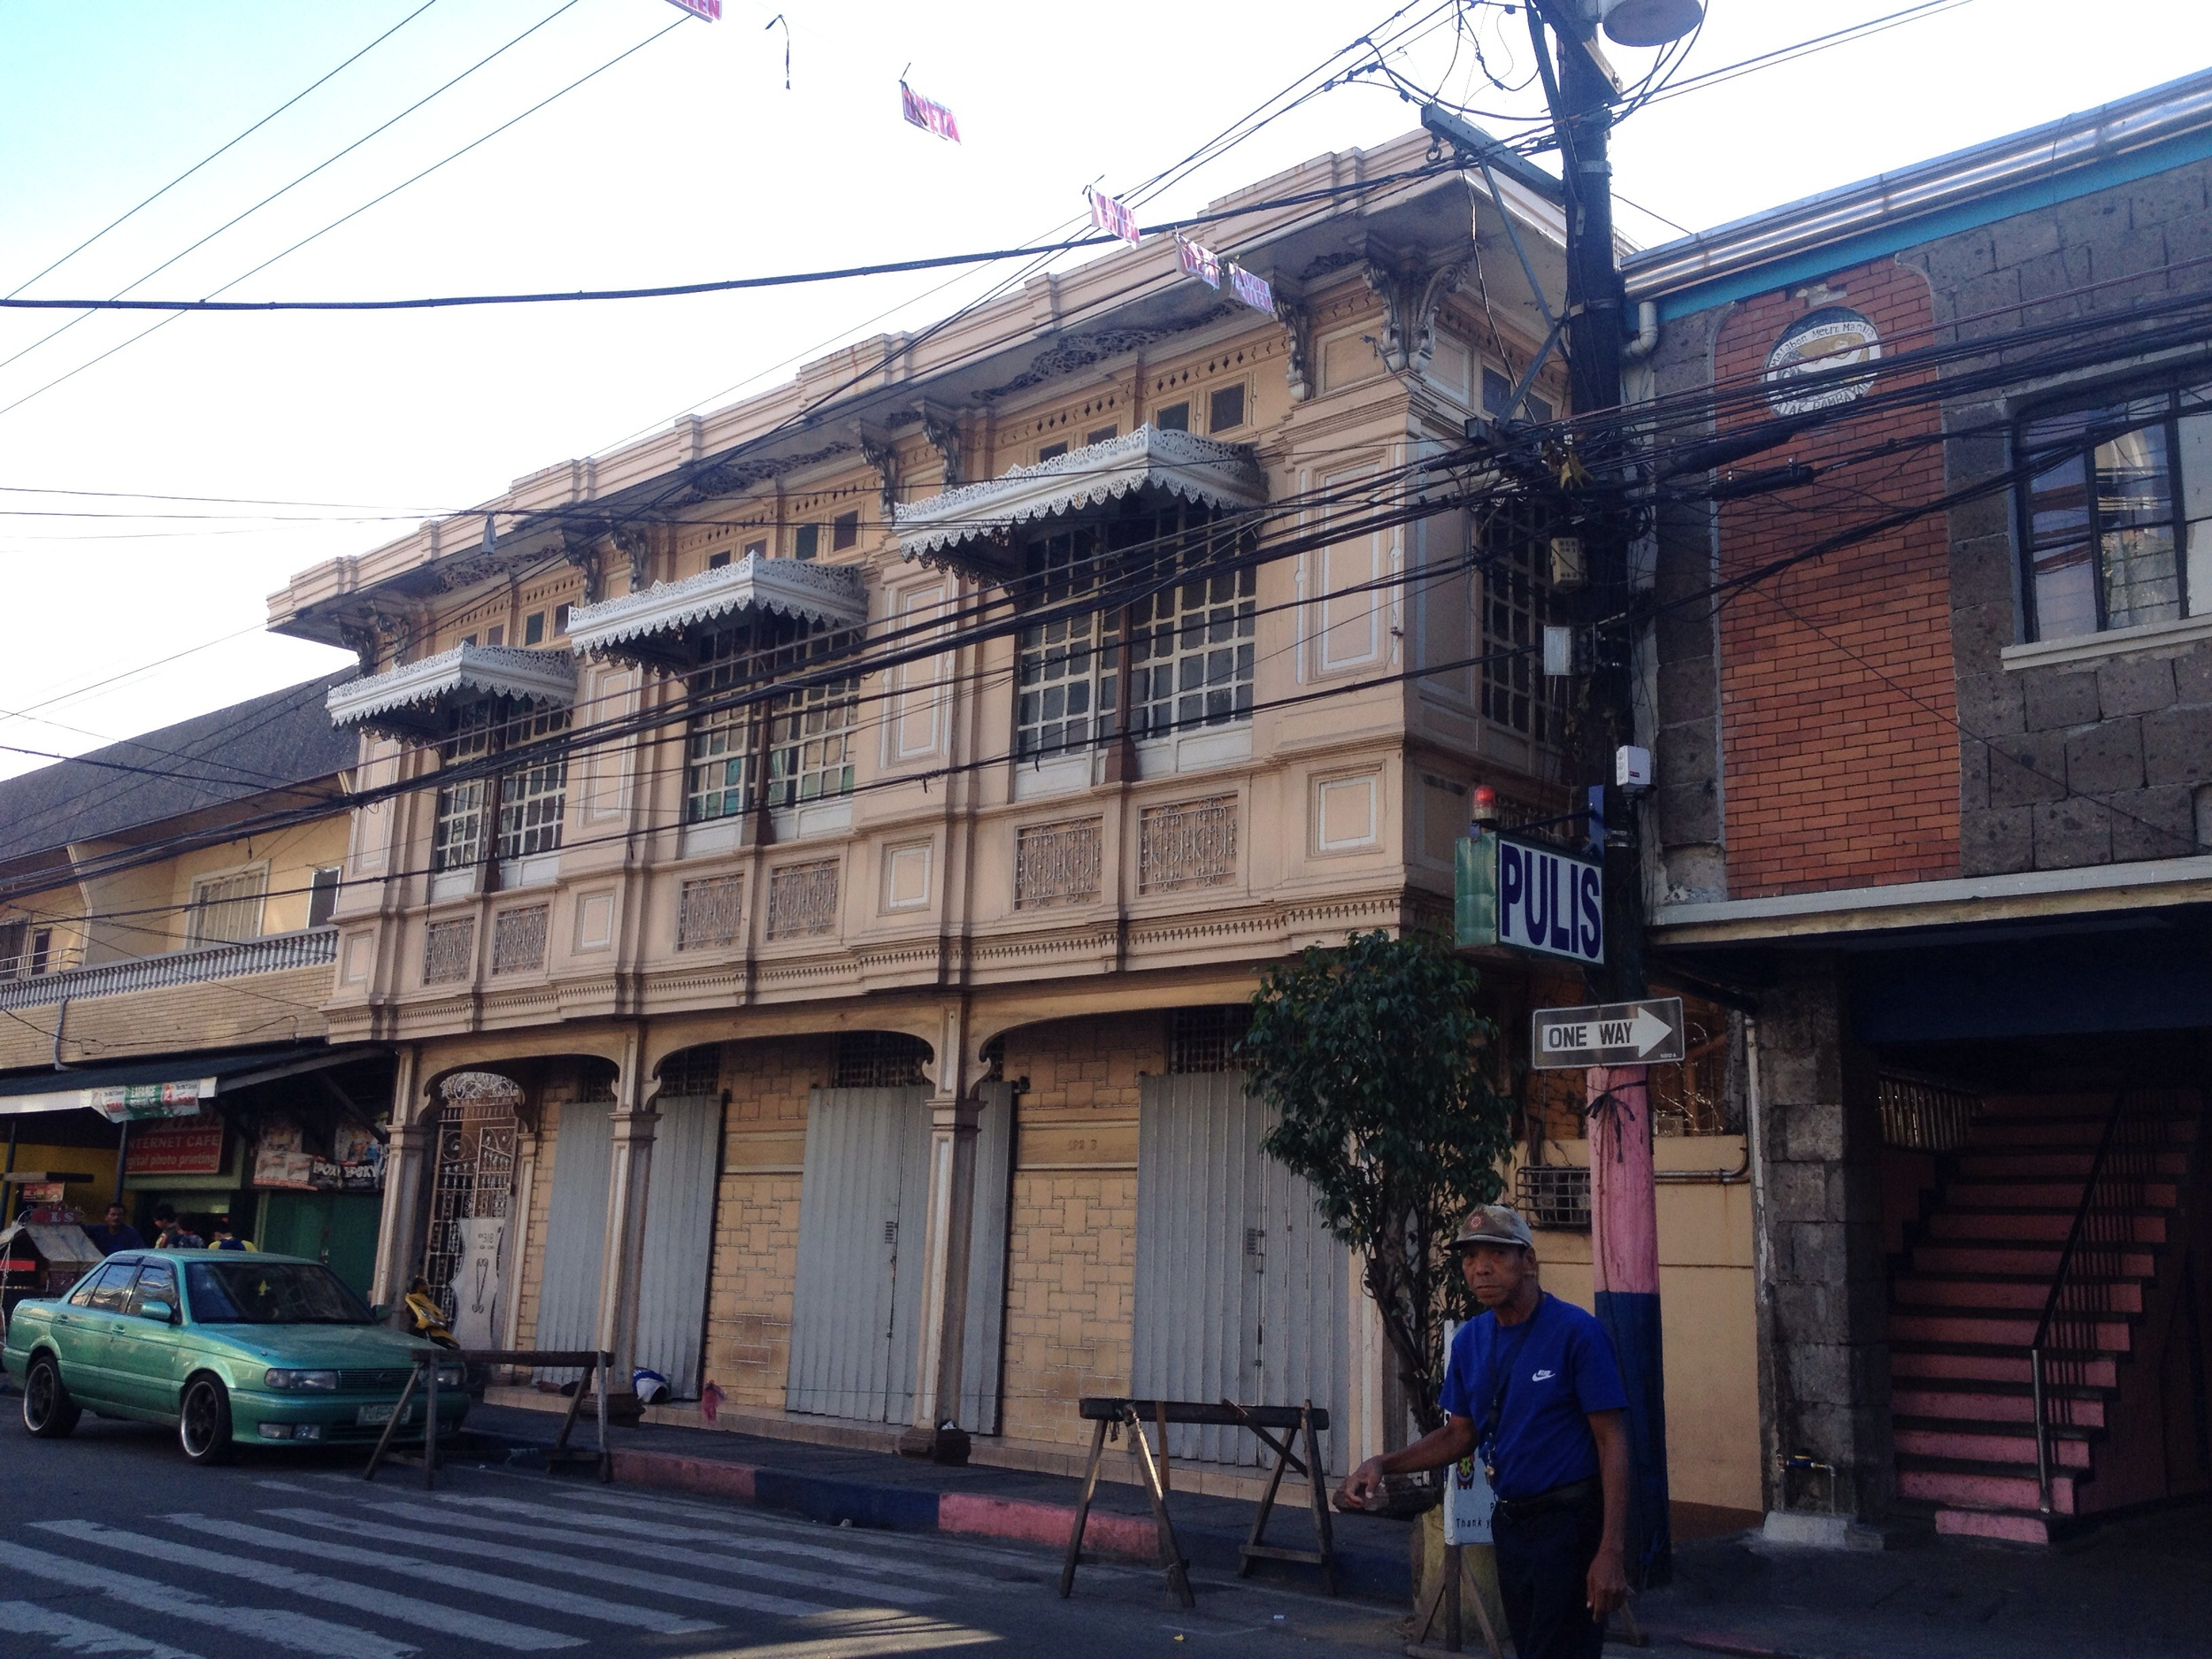 Another heritage home on General Luna St. This one seems to be well preserved. I will have to come back to see what stores are on the first floor. If tourism takes hold here the ground floor shops would make great souvenir shops since it is across the street from the Church of theImmaculate Conception. Next store is the Barangay hall and a basketball court. The two lane streets are already quite bikable, but the city could think about putting in bike racks in this area since there is a cluster of uses.